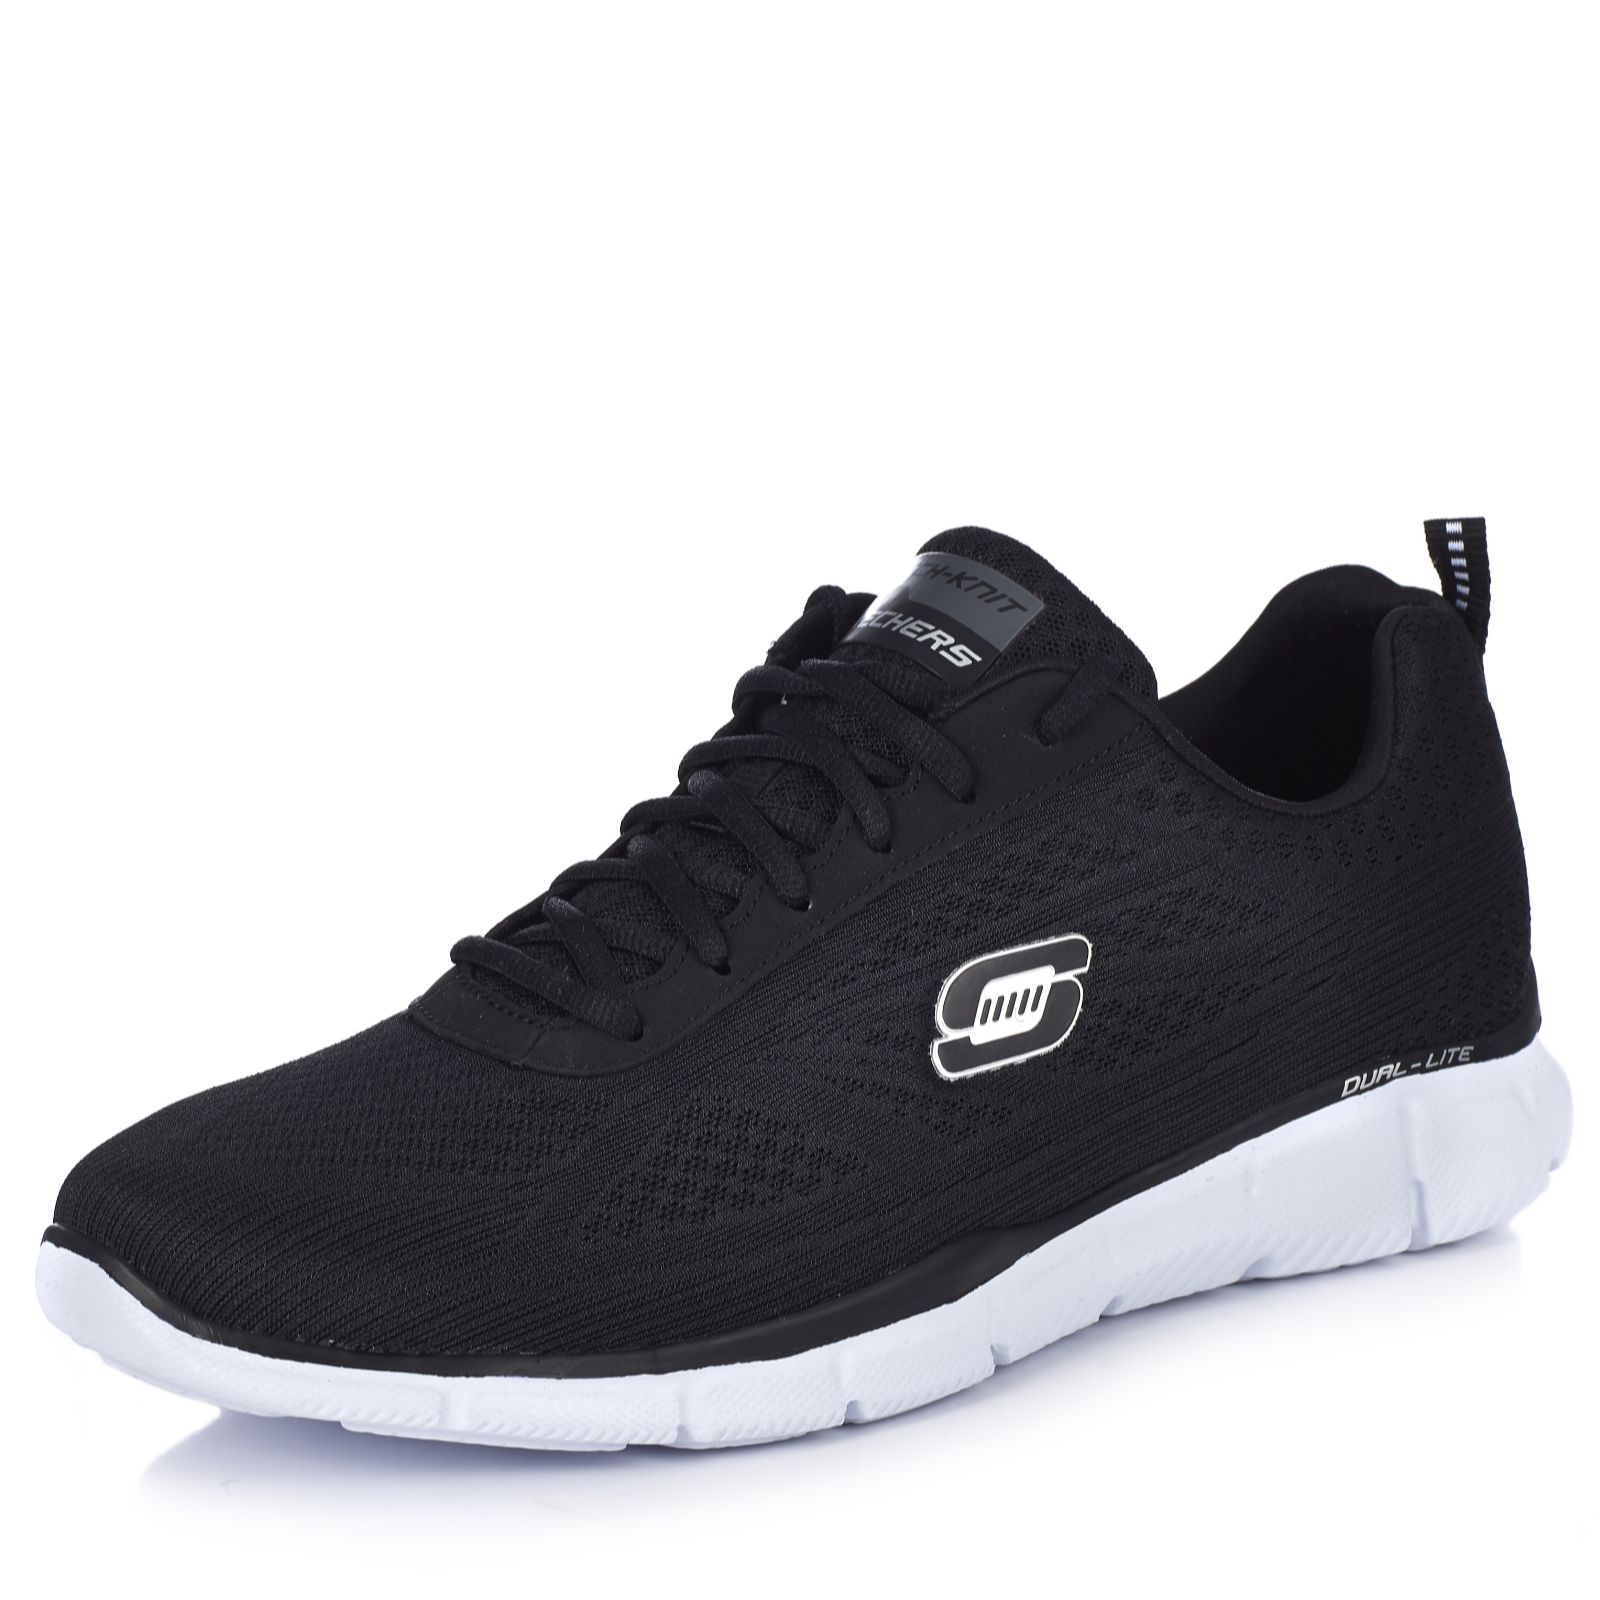 149014 Skechers Men's Equalizer Quick Reaction Trainer with Gel Top Memory  Foam QVC Price: £